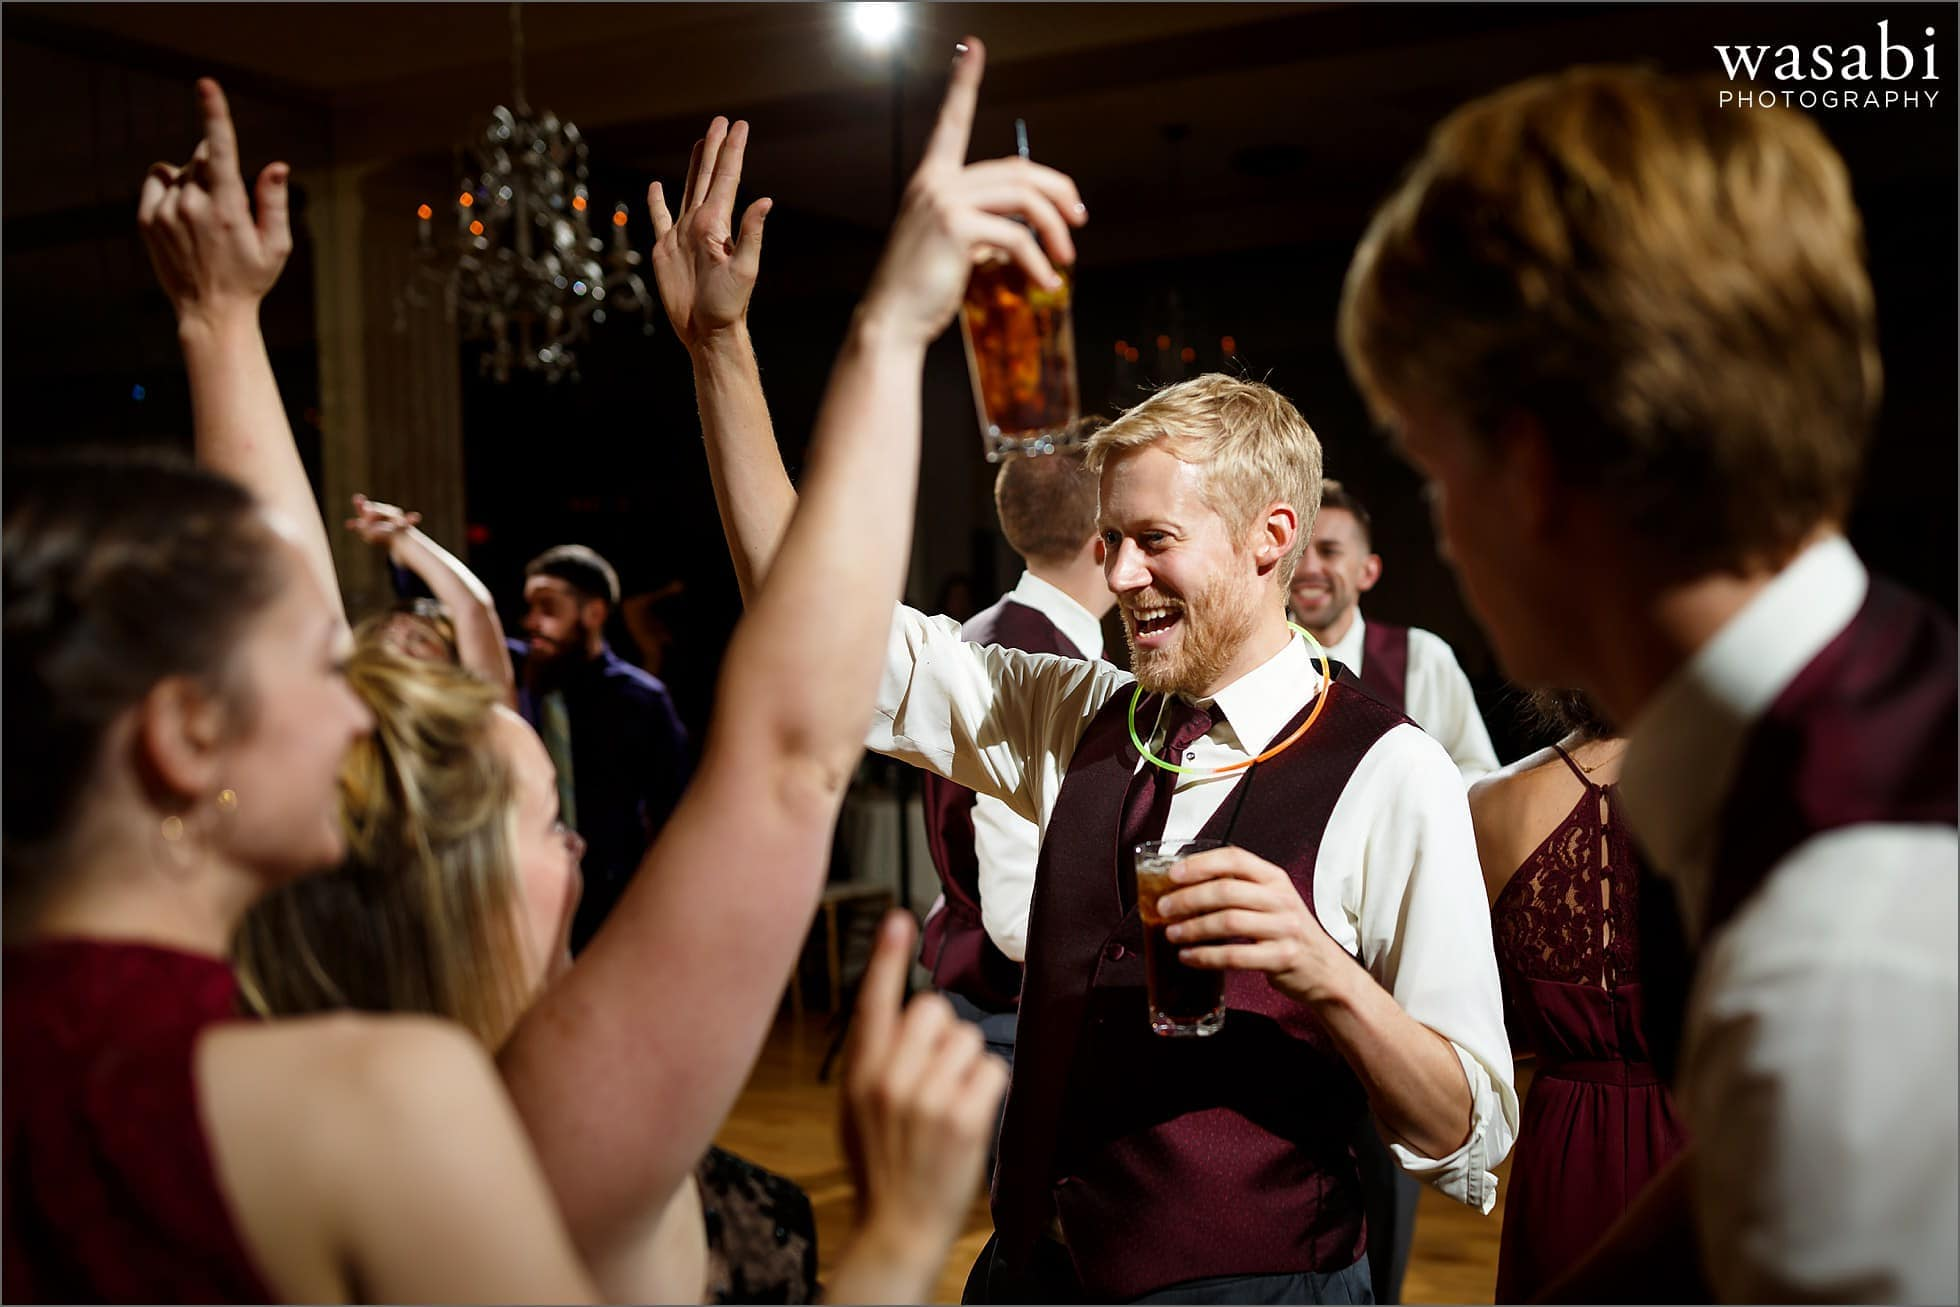 wedding party dances during Palos Country Club wedding reception in Orland Park